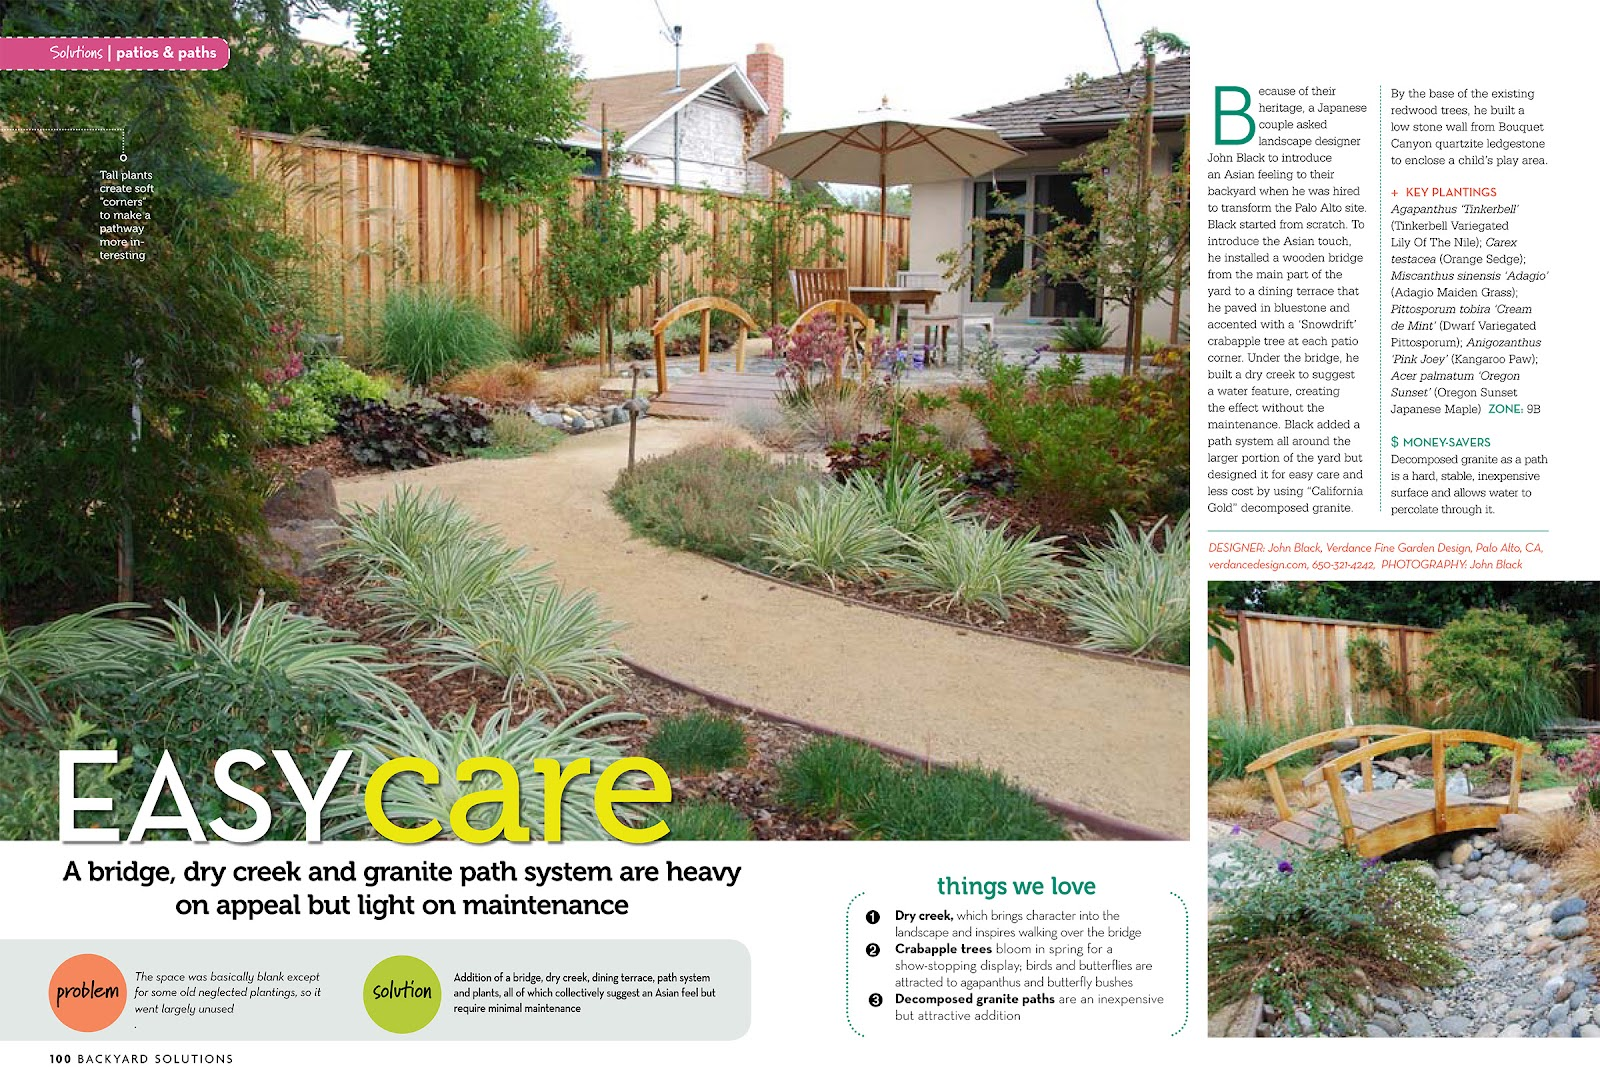 to have my work featured on the current cover of backyard solutions